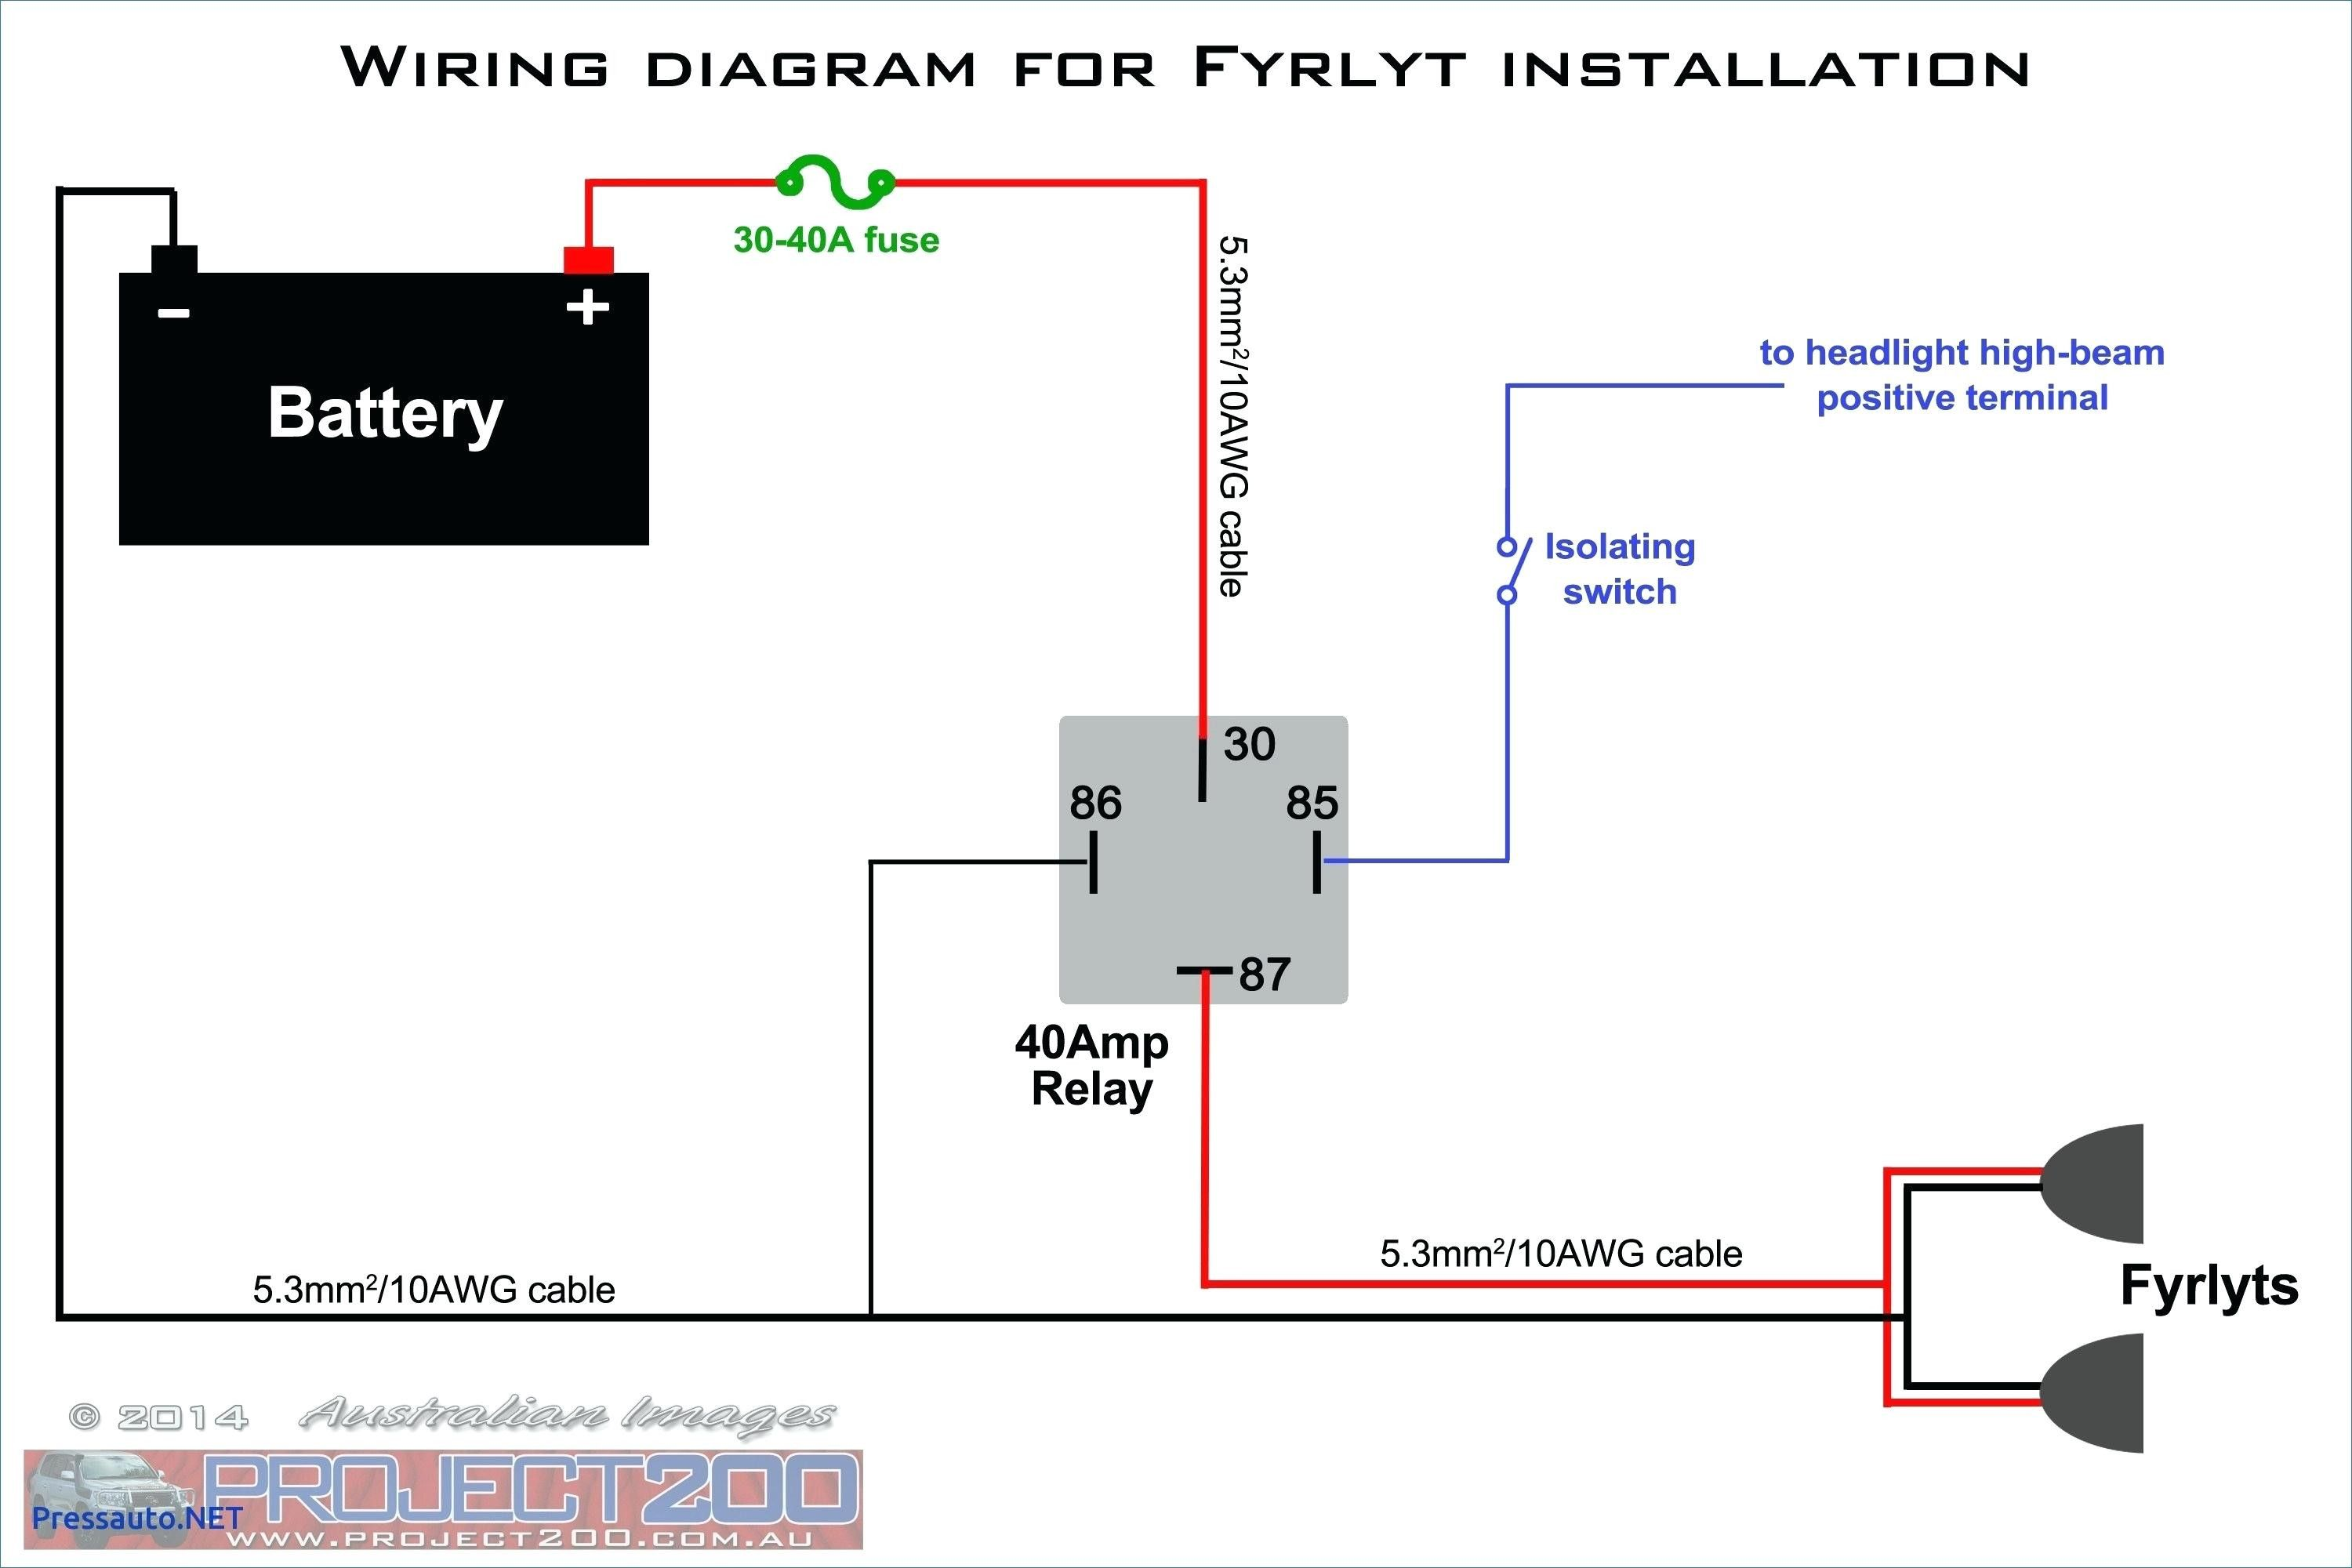 12v 5 Pin Relay Wiring Diagram Driving Lights How To Wire Of Kc At Electrical Circuit Diagram Electrical Wiring Diagram Diagram